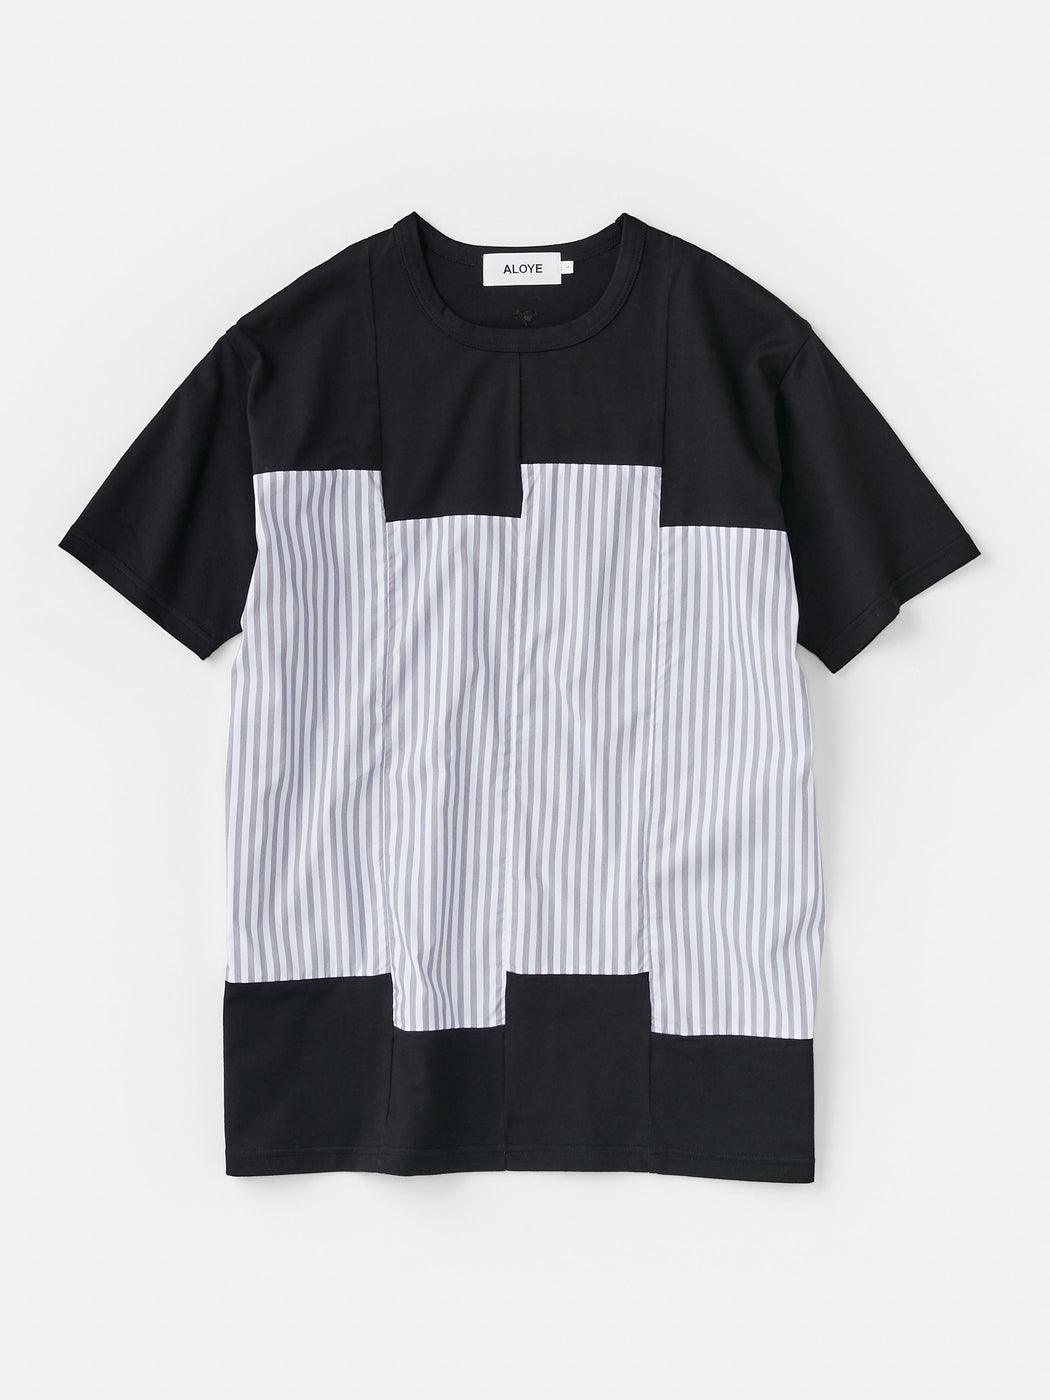 ALOYE Shirt Fabrics Men's Short Sleeve T-shirt Black-Fine Stripe